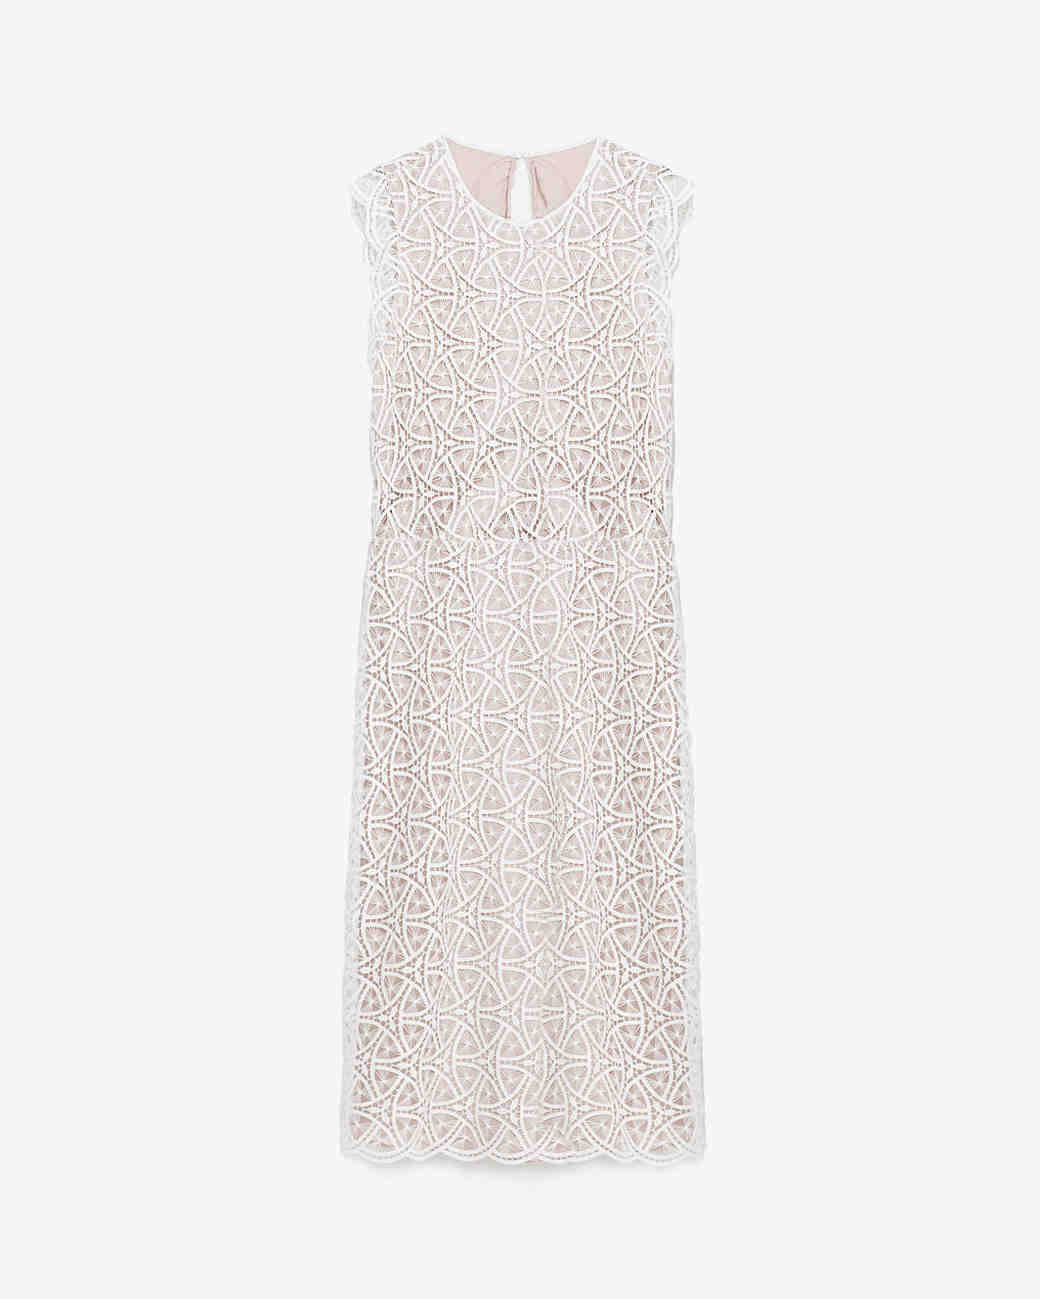 bridal-shower-dress-zara-lace-midi-dress-0416.jpg